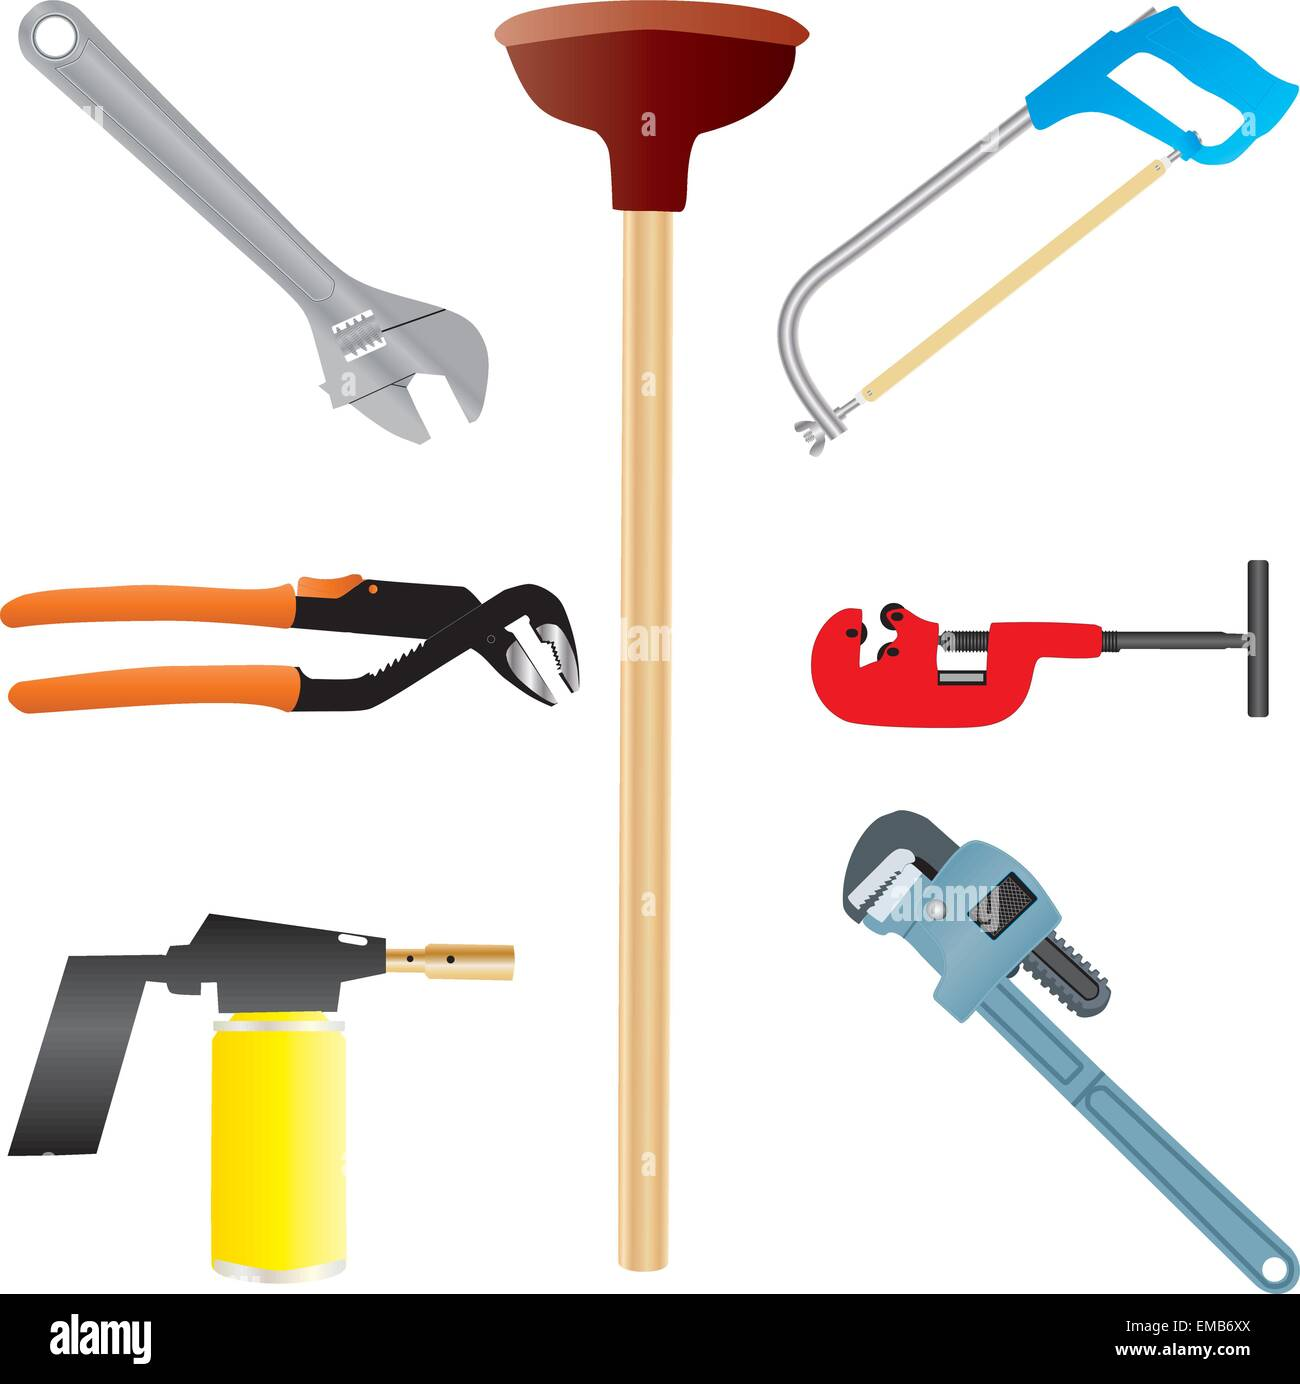 Plumbers Tools, Adjustable Spanner, Wrench, Pipe Wrench